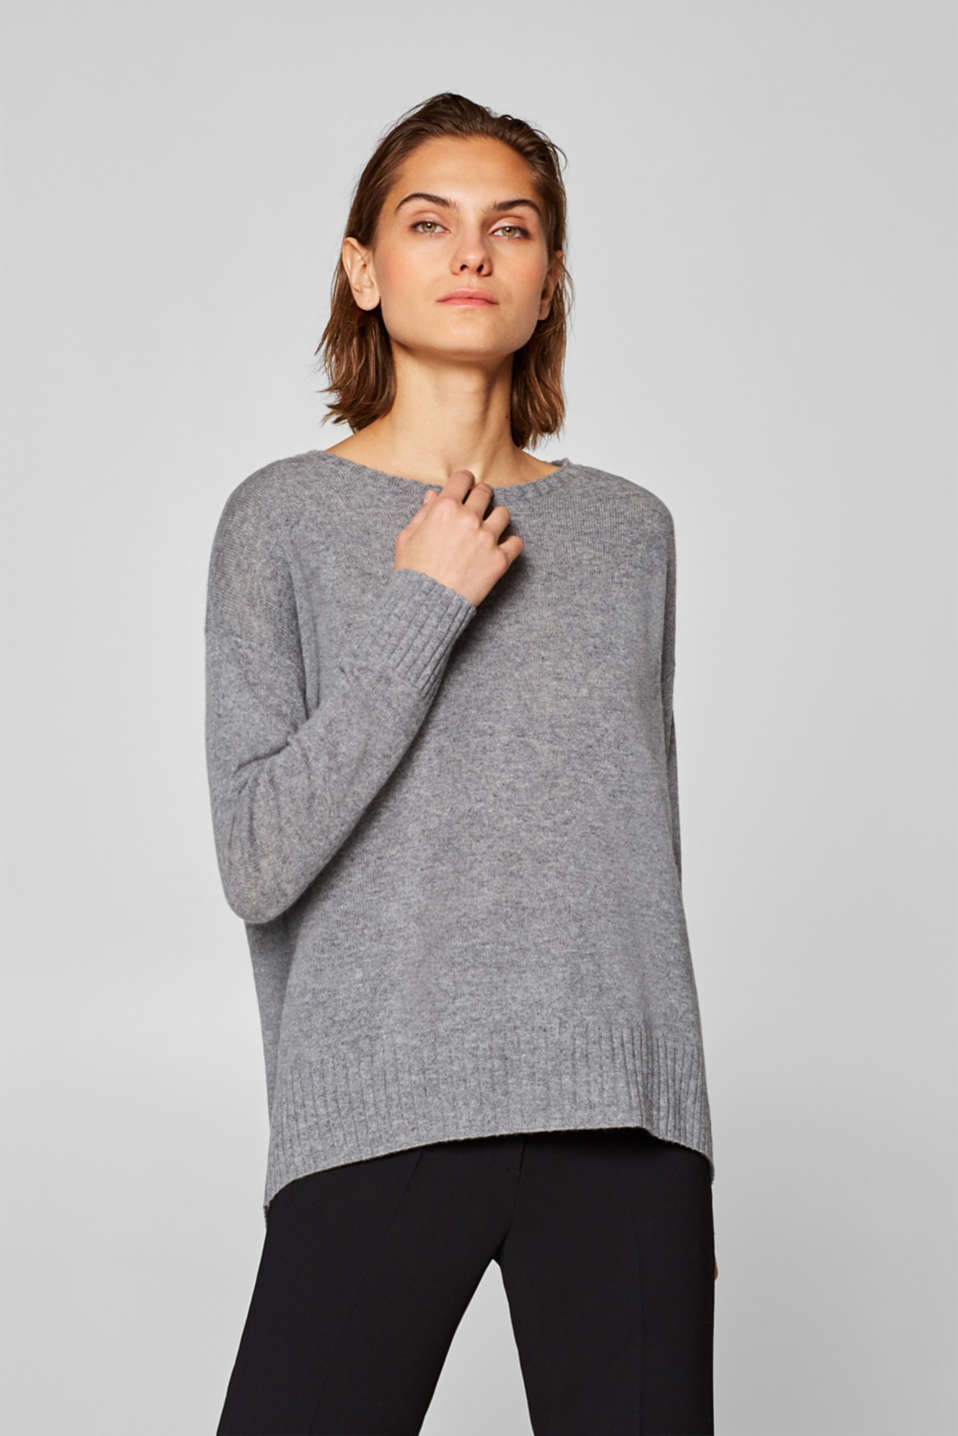 Esprit - Made of cashmere: jumper with a high-low hem